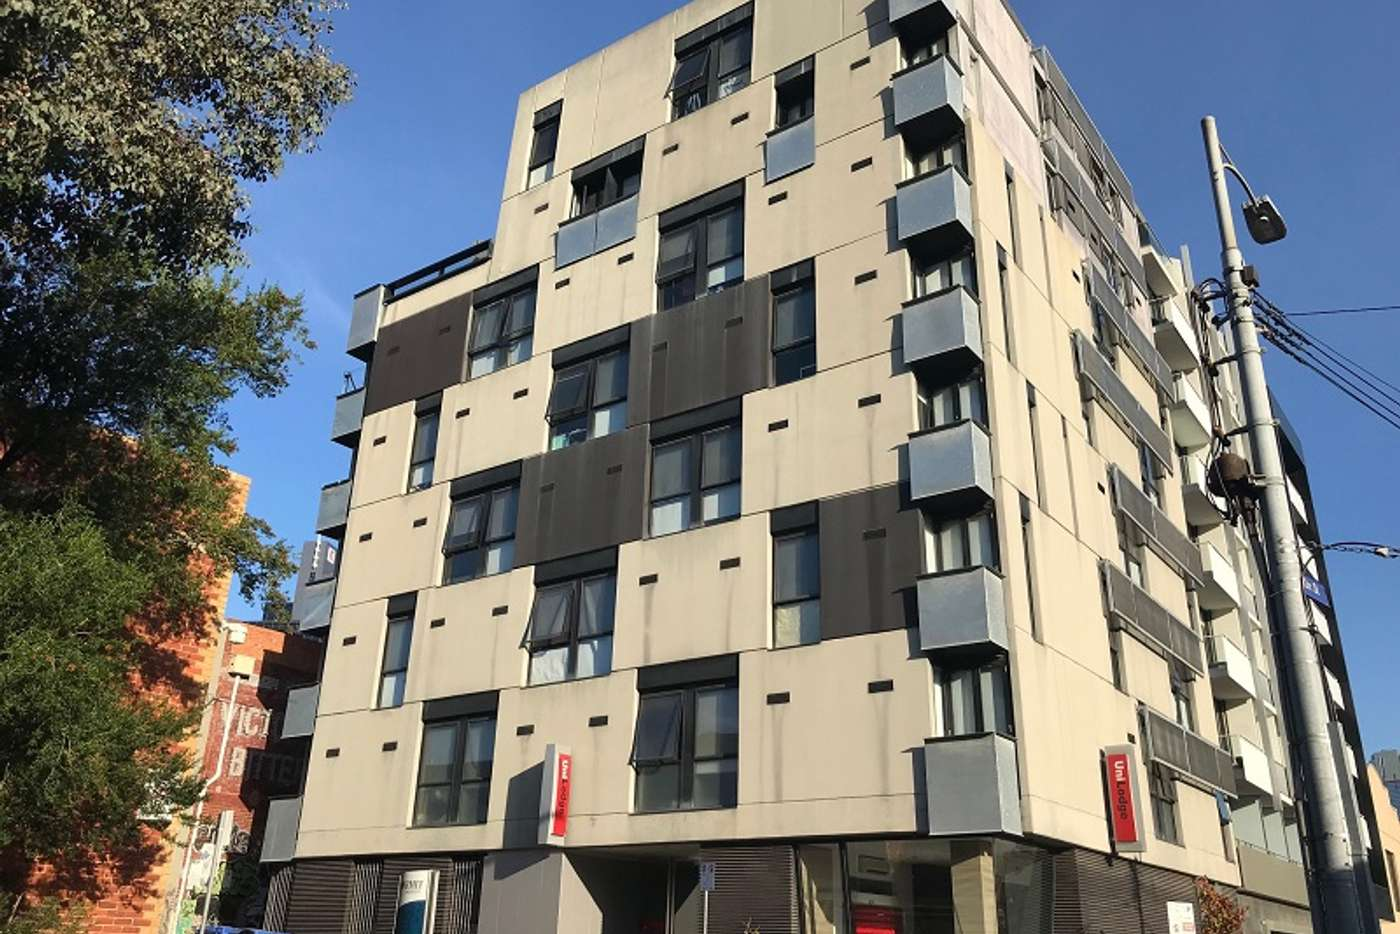 Main view of Homely house listing, 313/9 Earl Street, Carlton VIC 3053